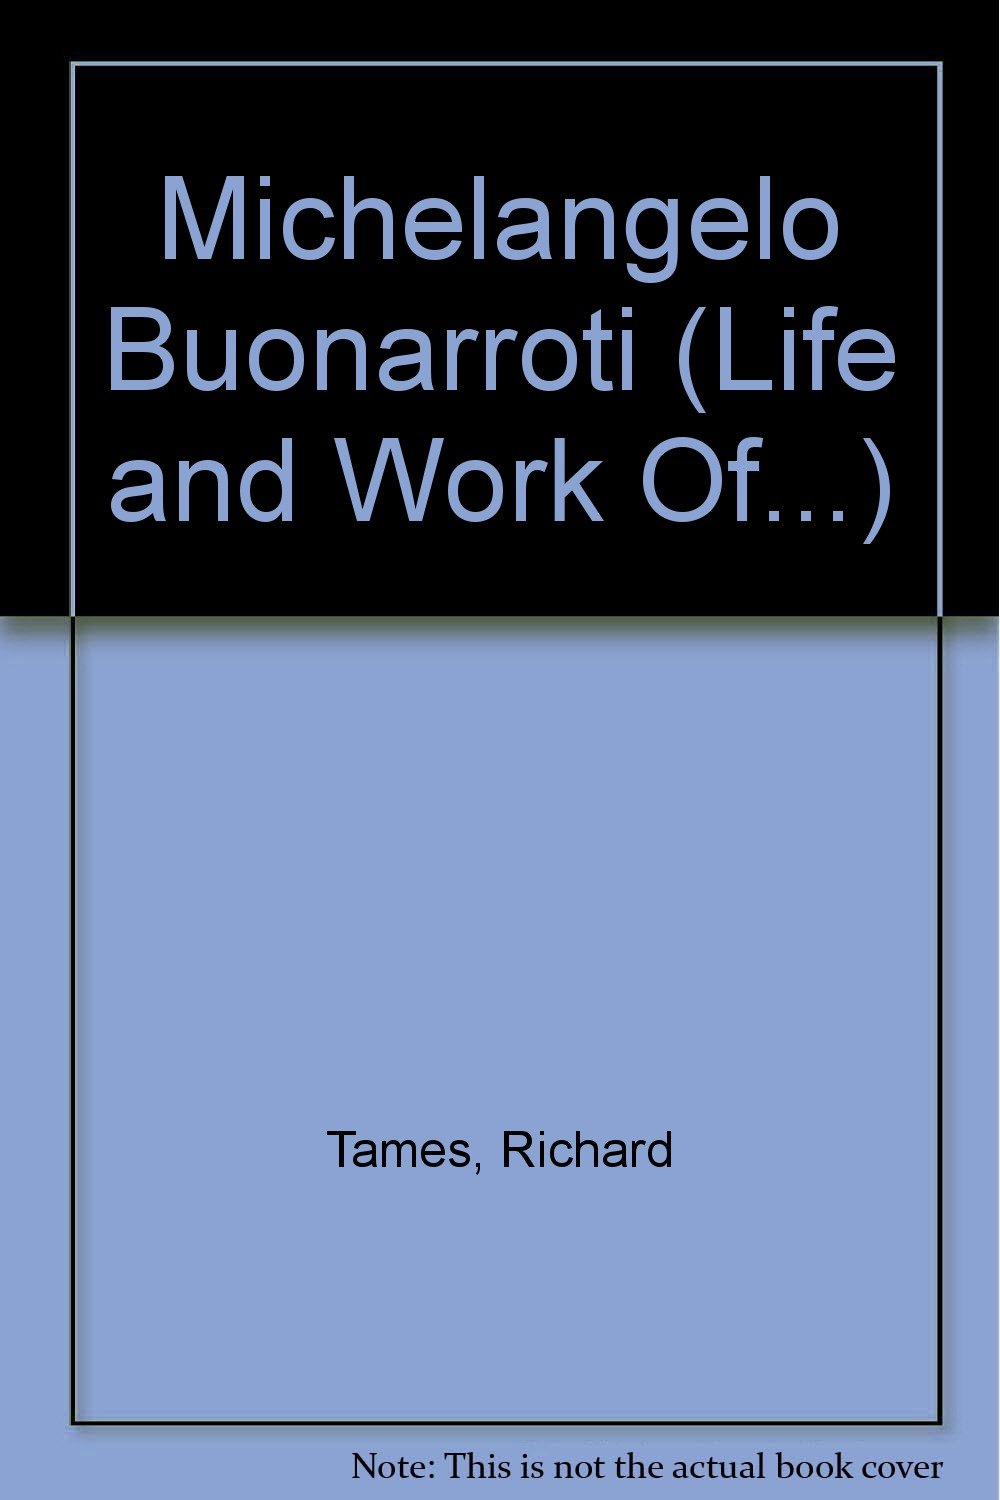 Michelangelo Buonarroti (Life and Work Of¹, the) ebook